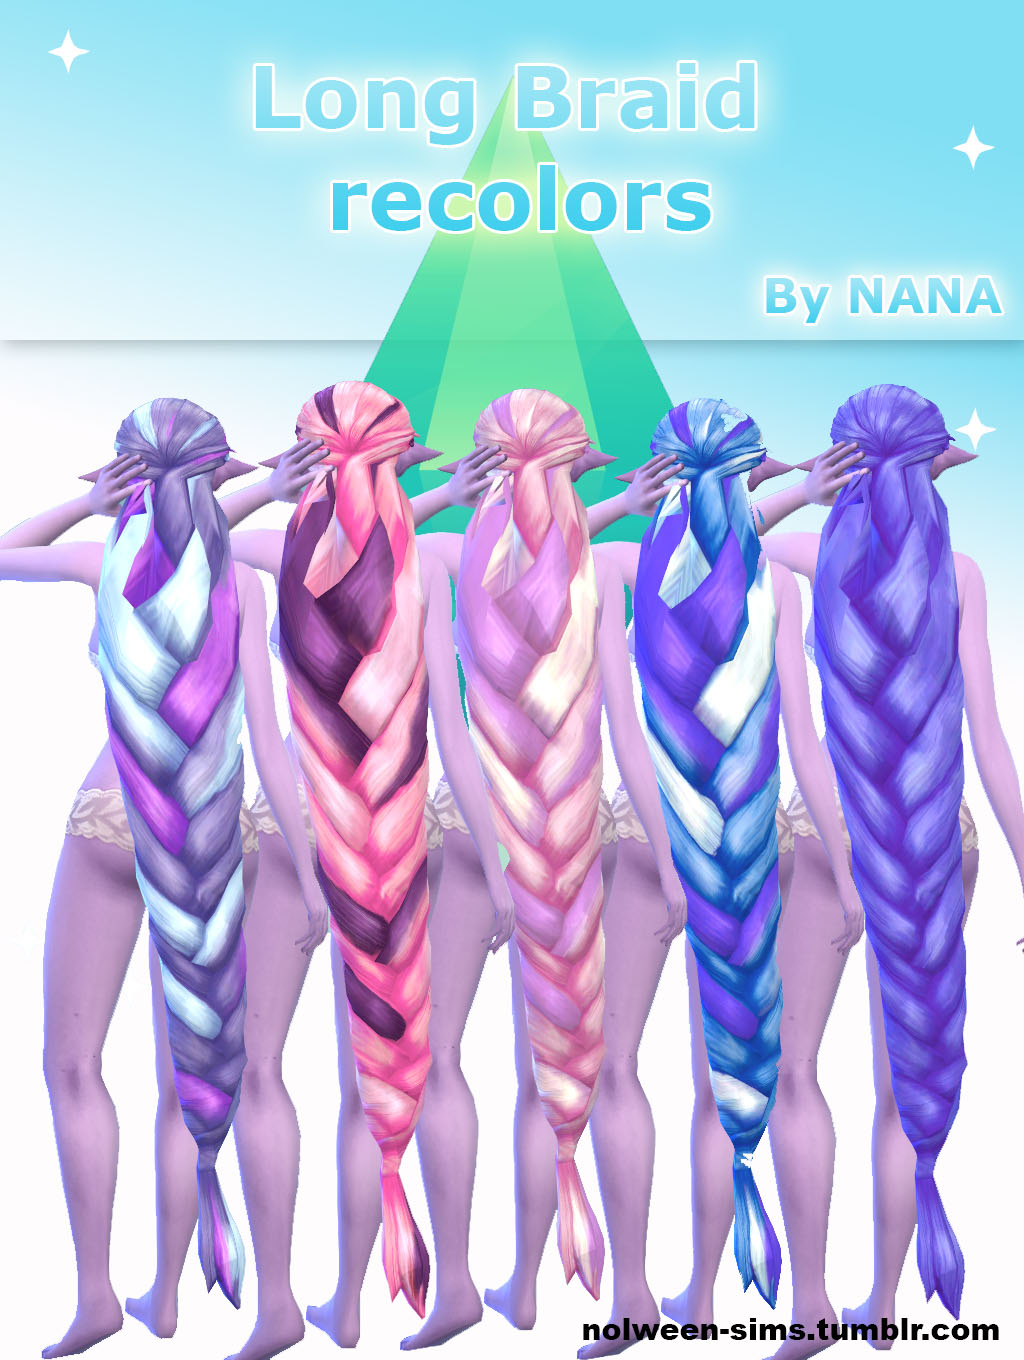 Long Braid recolors by NANA